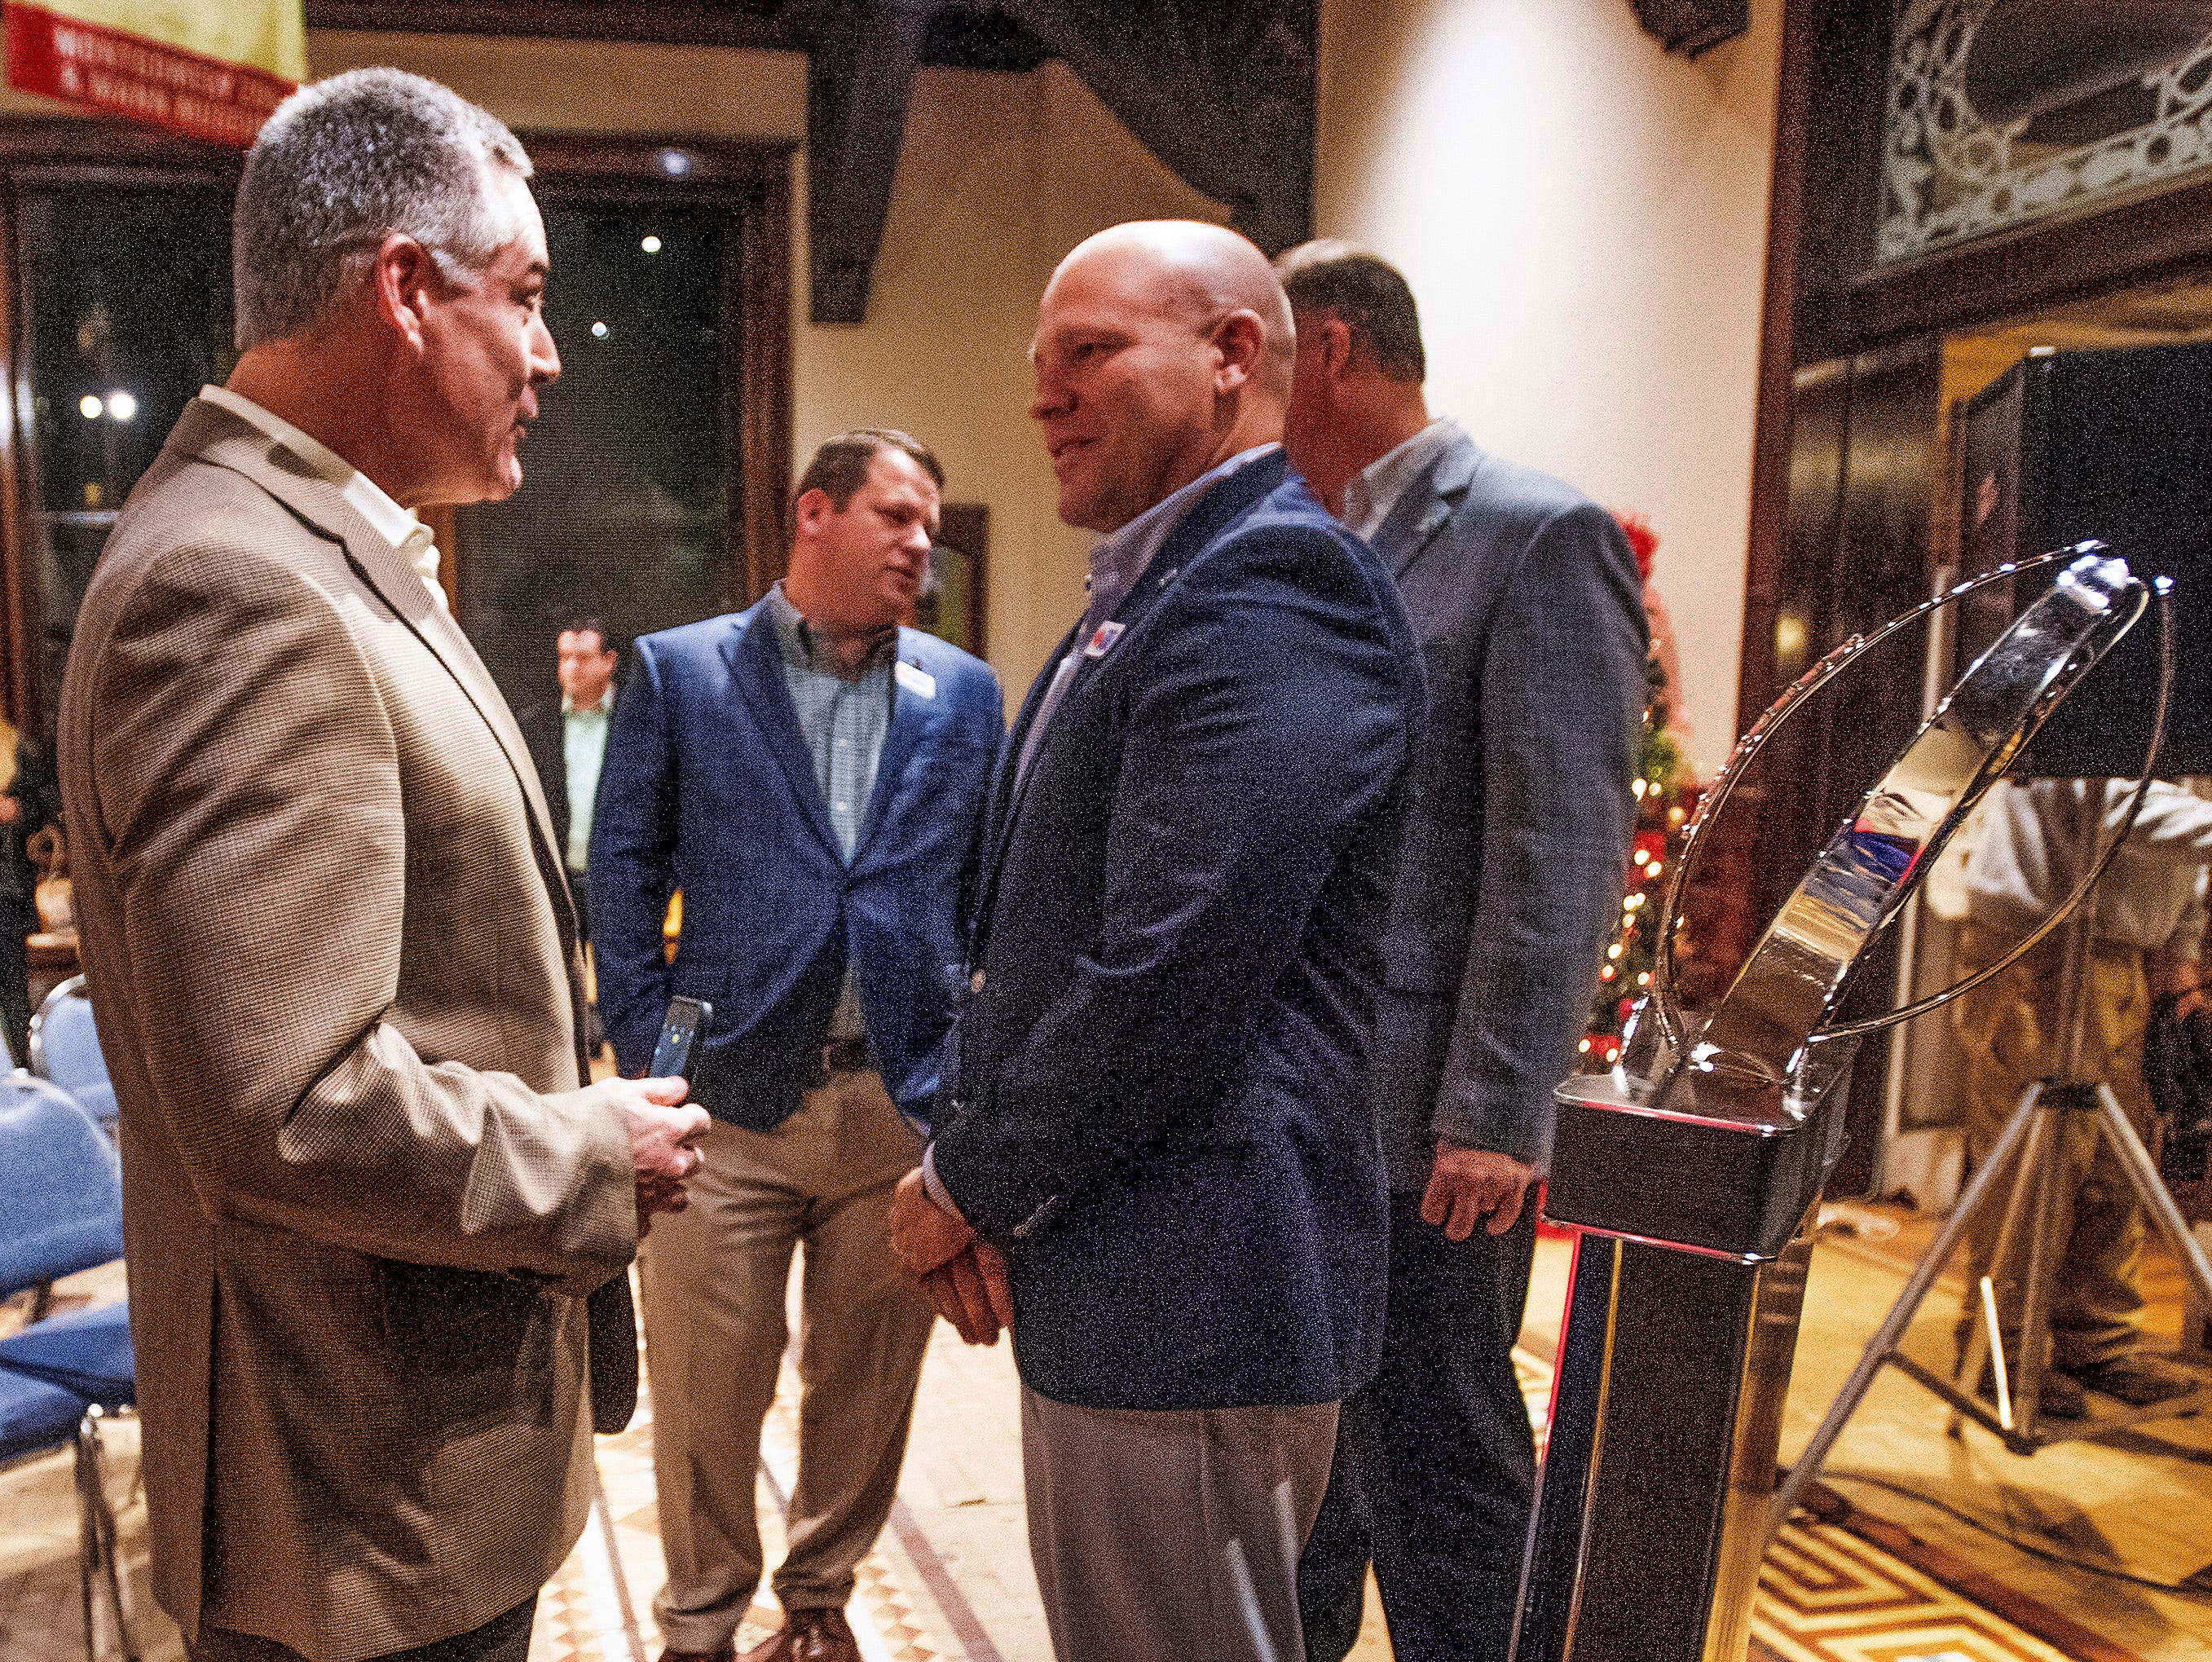 Eastern Michigan head coach Chris Creighton and Georgia Southern head coach Chad Lunsford chat at the Camellia Bowl Coaches Press Conference in Montgomery, Ala., on Tuesday December 11, 2018.